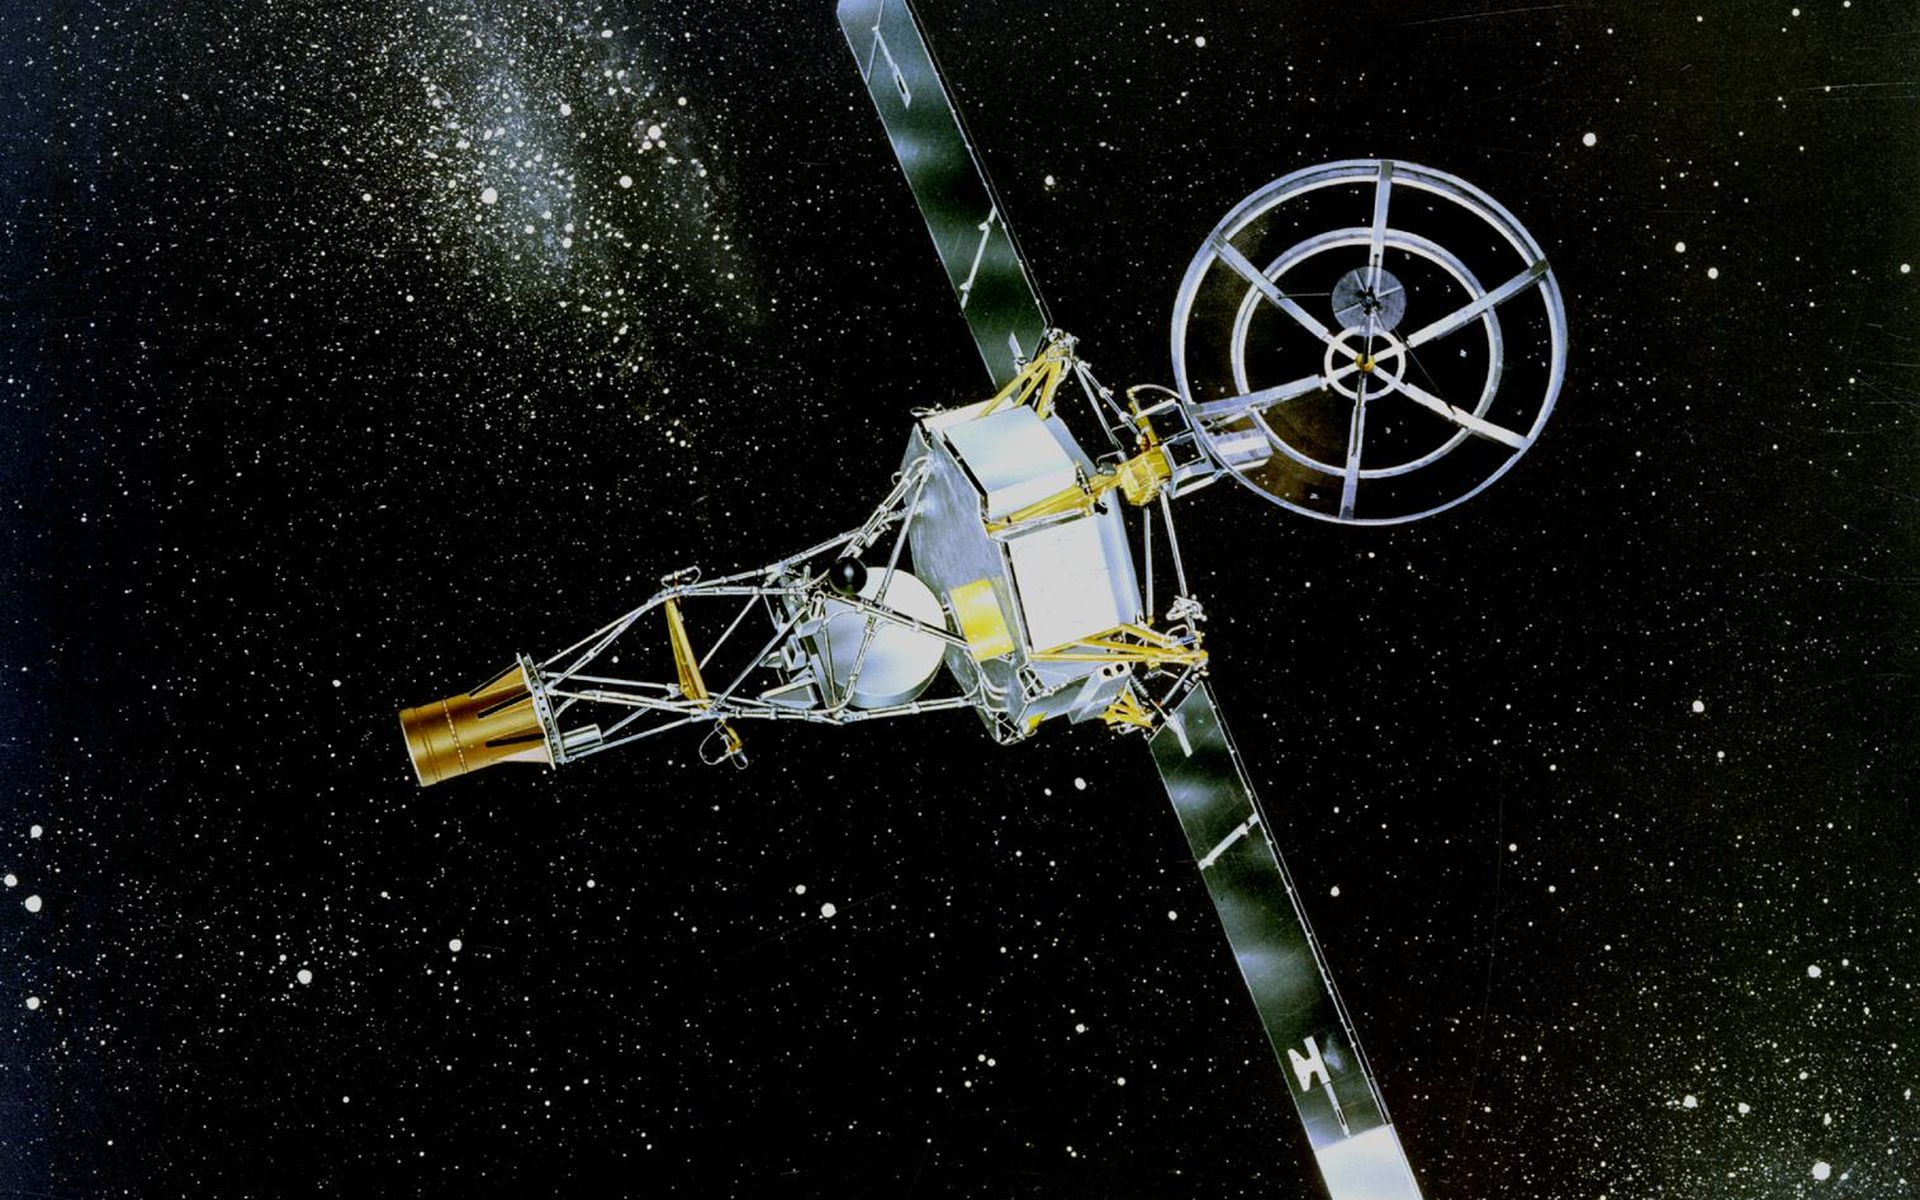 nasa first space mission - photo #32